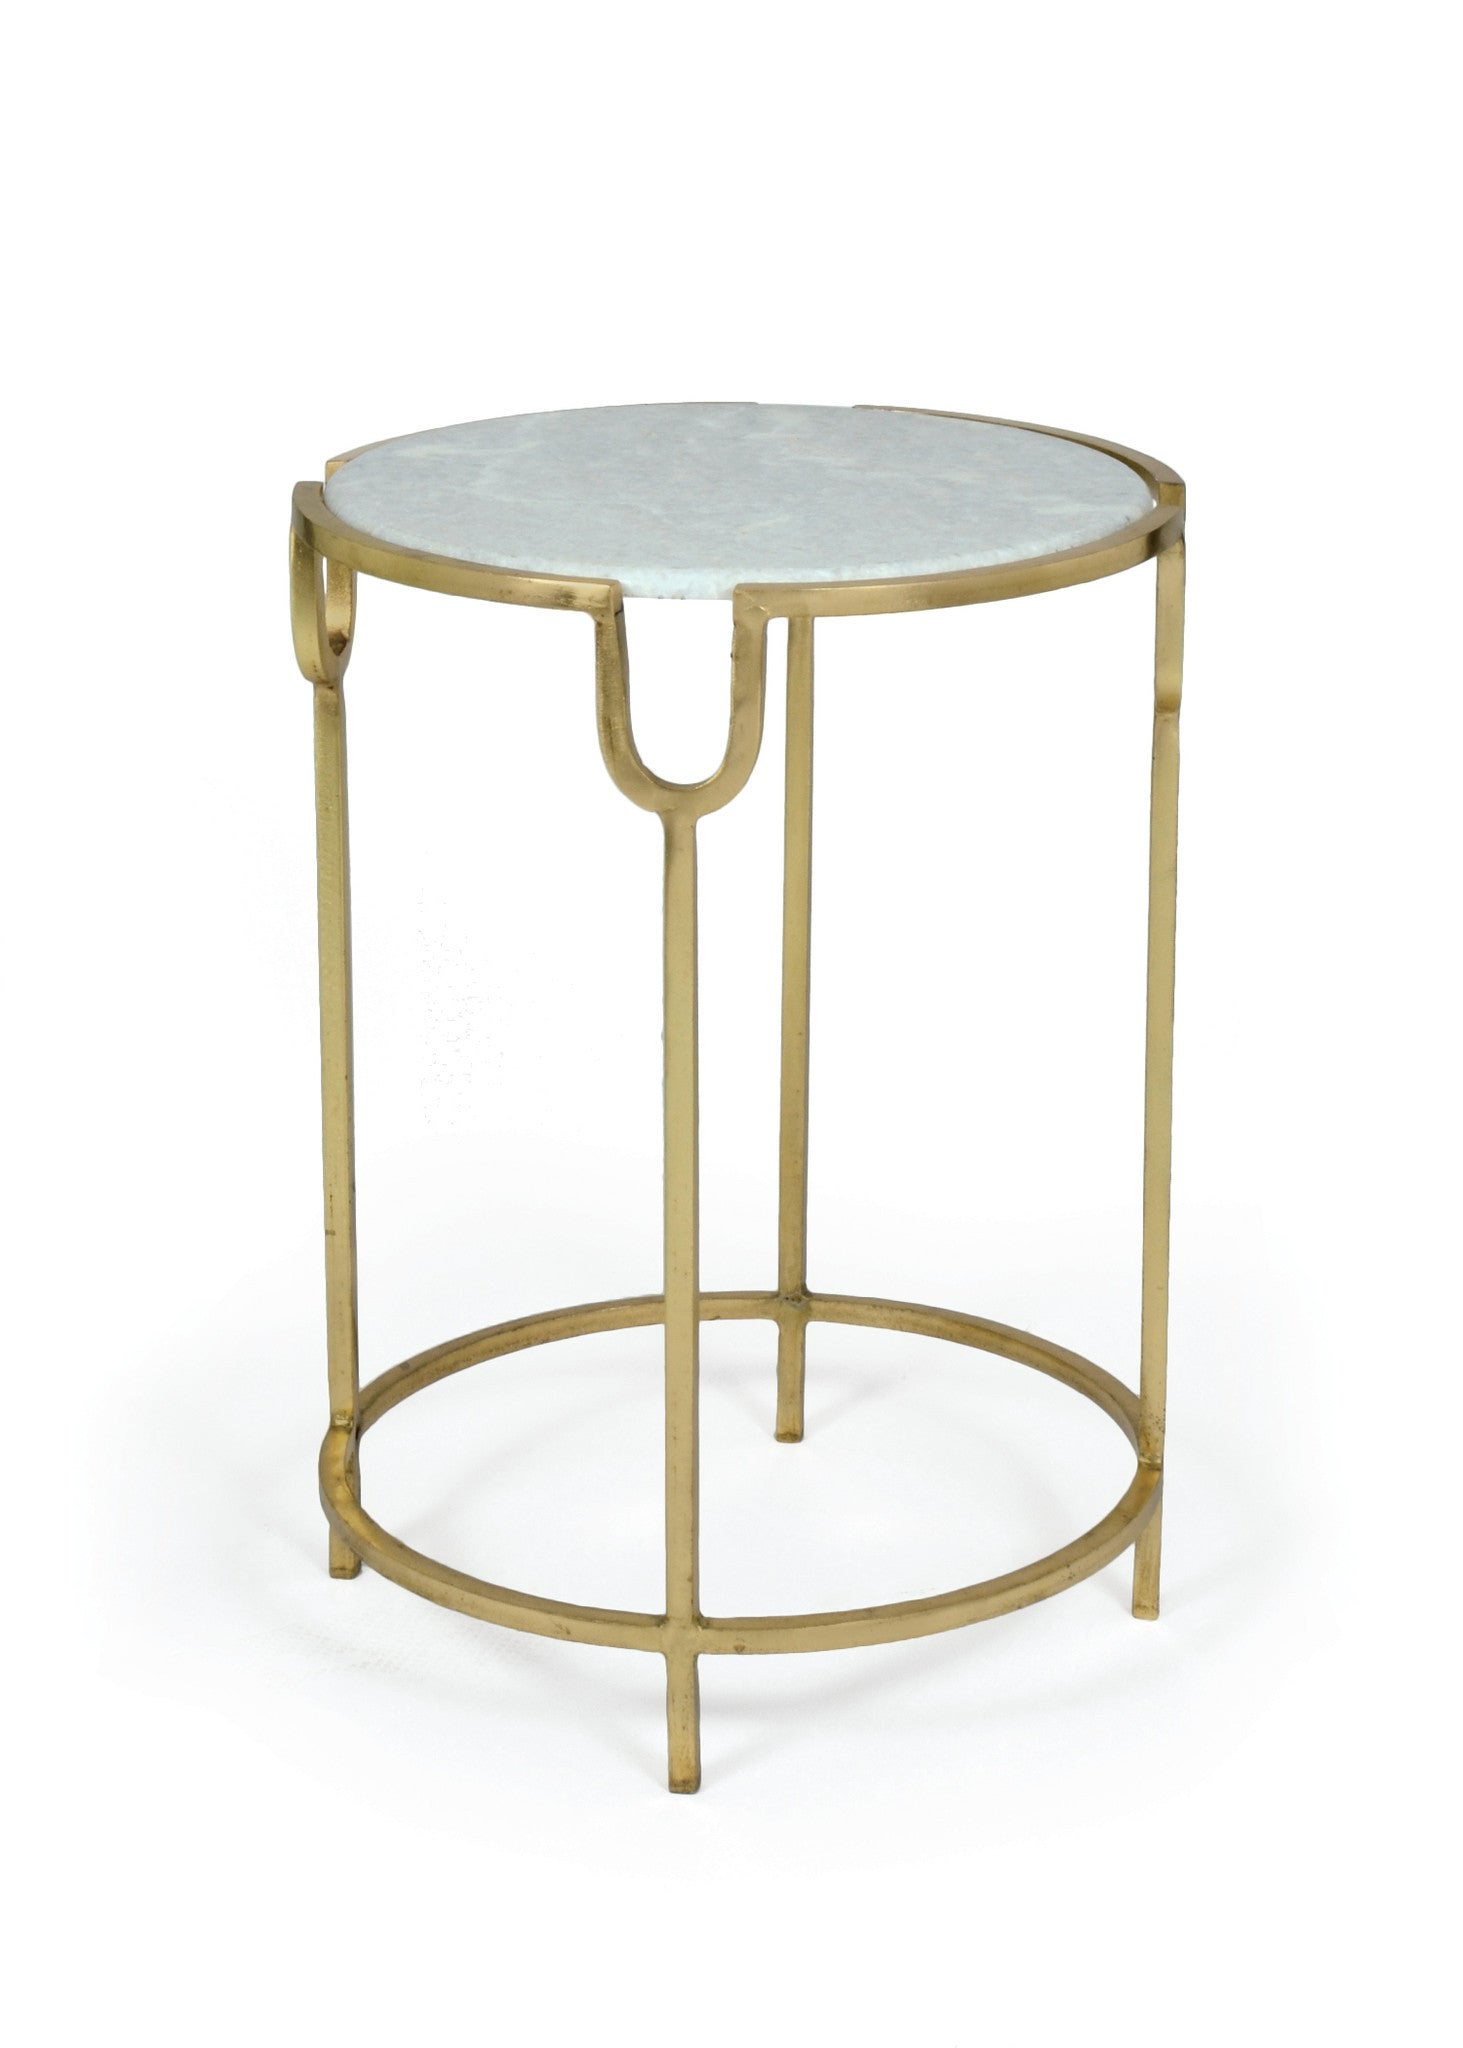 Darling Iron Side Table with Marble Top on Brass Base